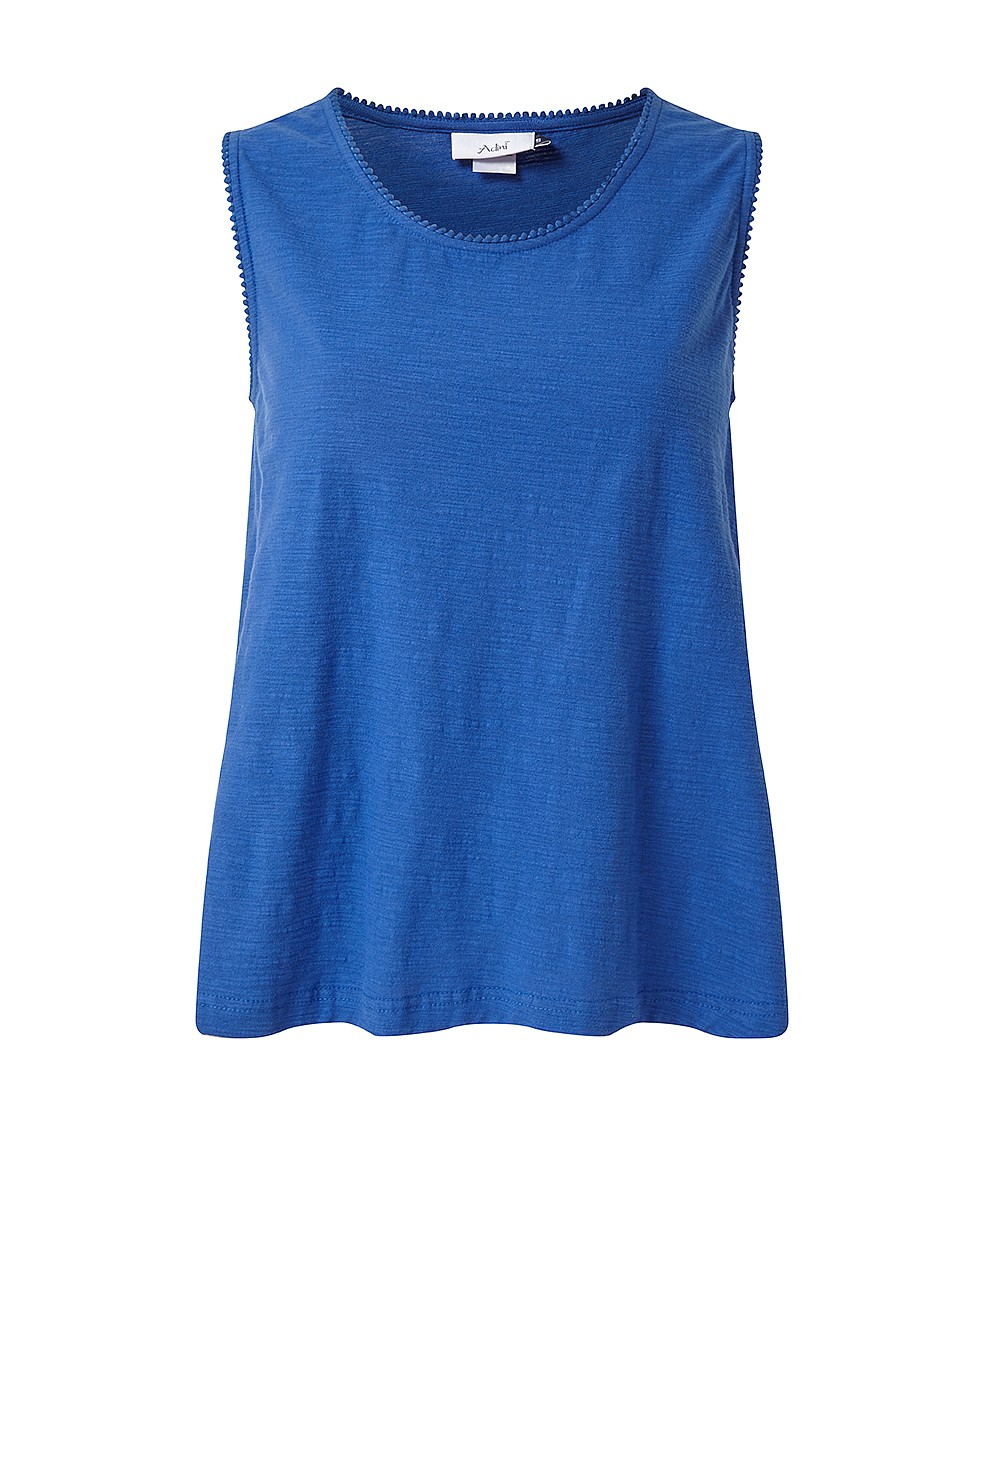 Adini Cheryl top in blue